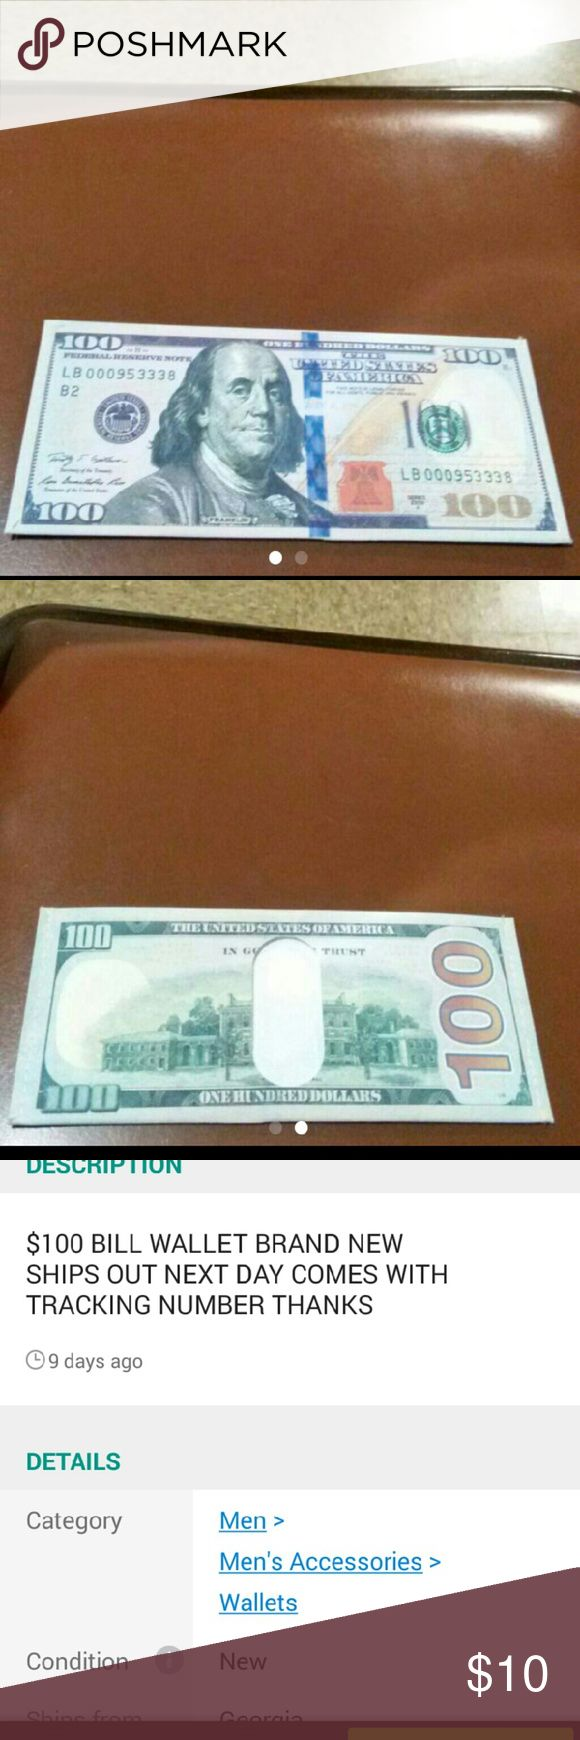 $100.00 DOLLARS BILL WALLET I HAVE A$100.00 DOLLARS BILL WALLET STILL IN NEW CONDITION NEVER USED BEFORE Other